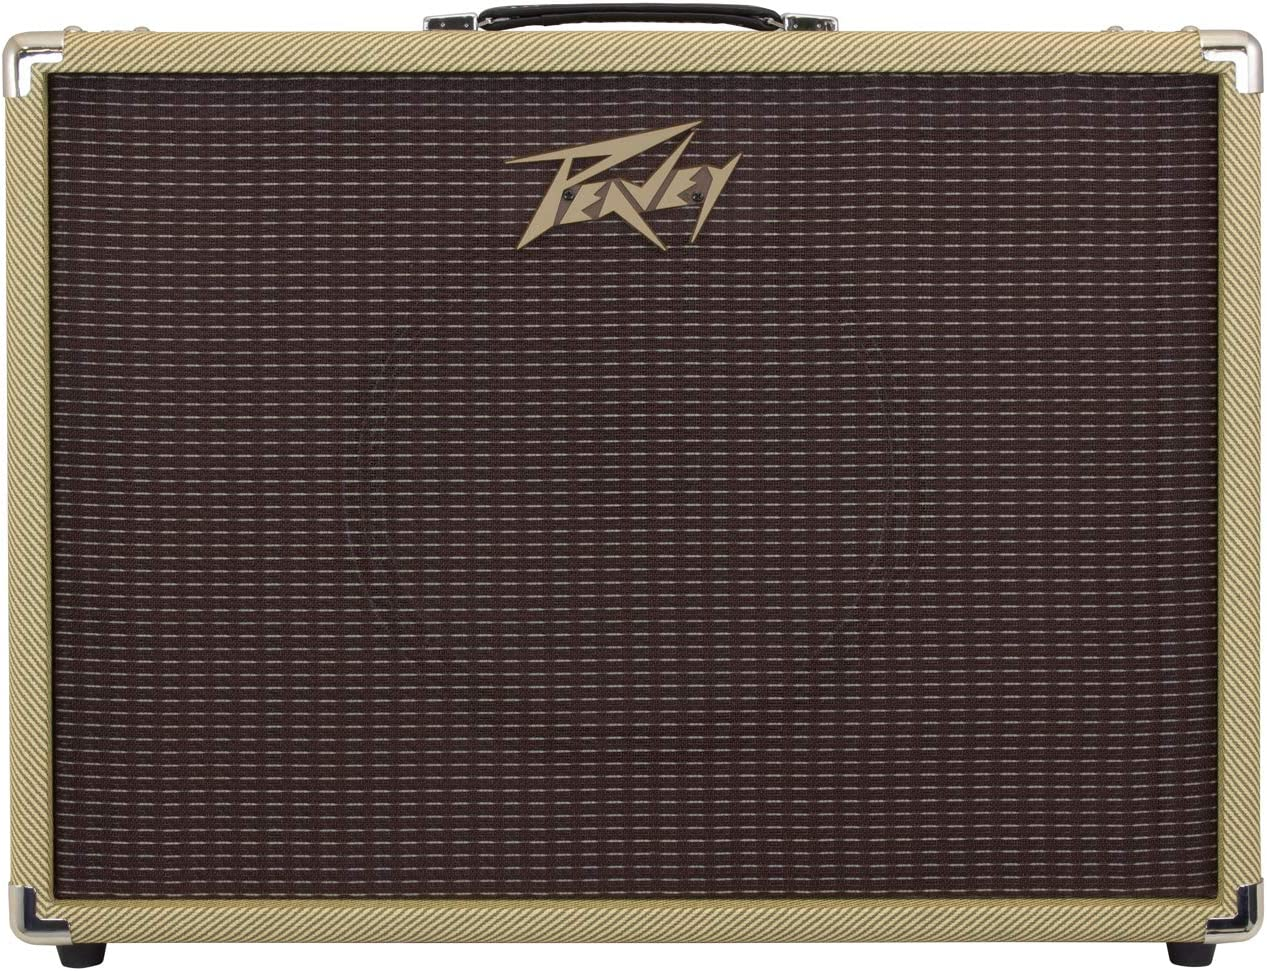 Peavey outlet 112-C 1x12 Guitar Cabinet Tucson Mall